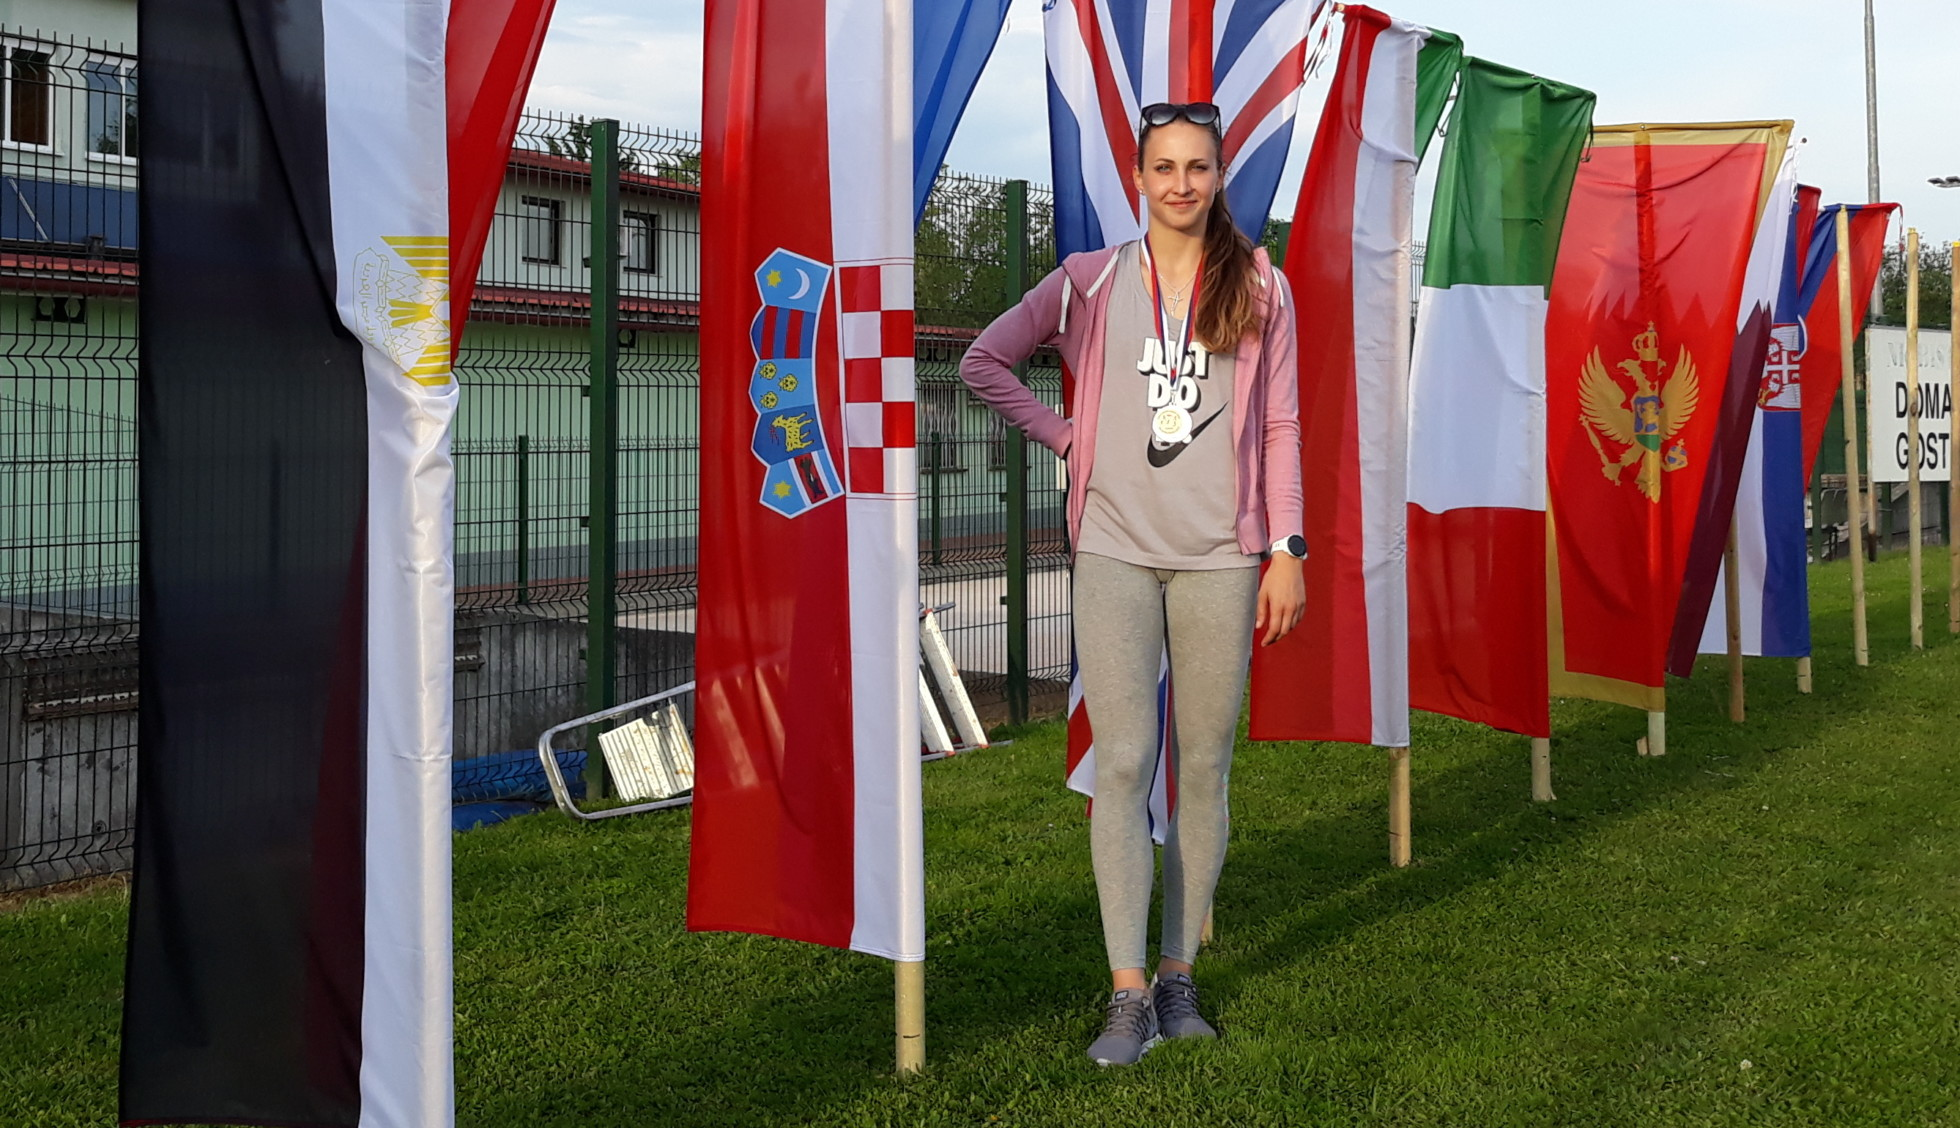 Megi in front of flags with her winning medal